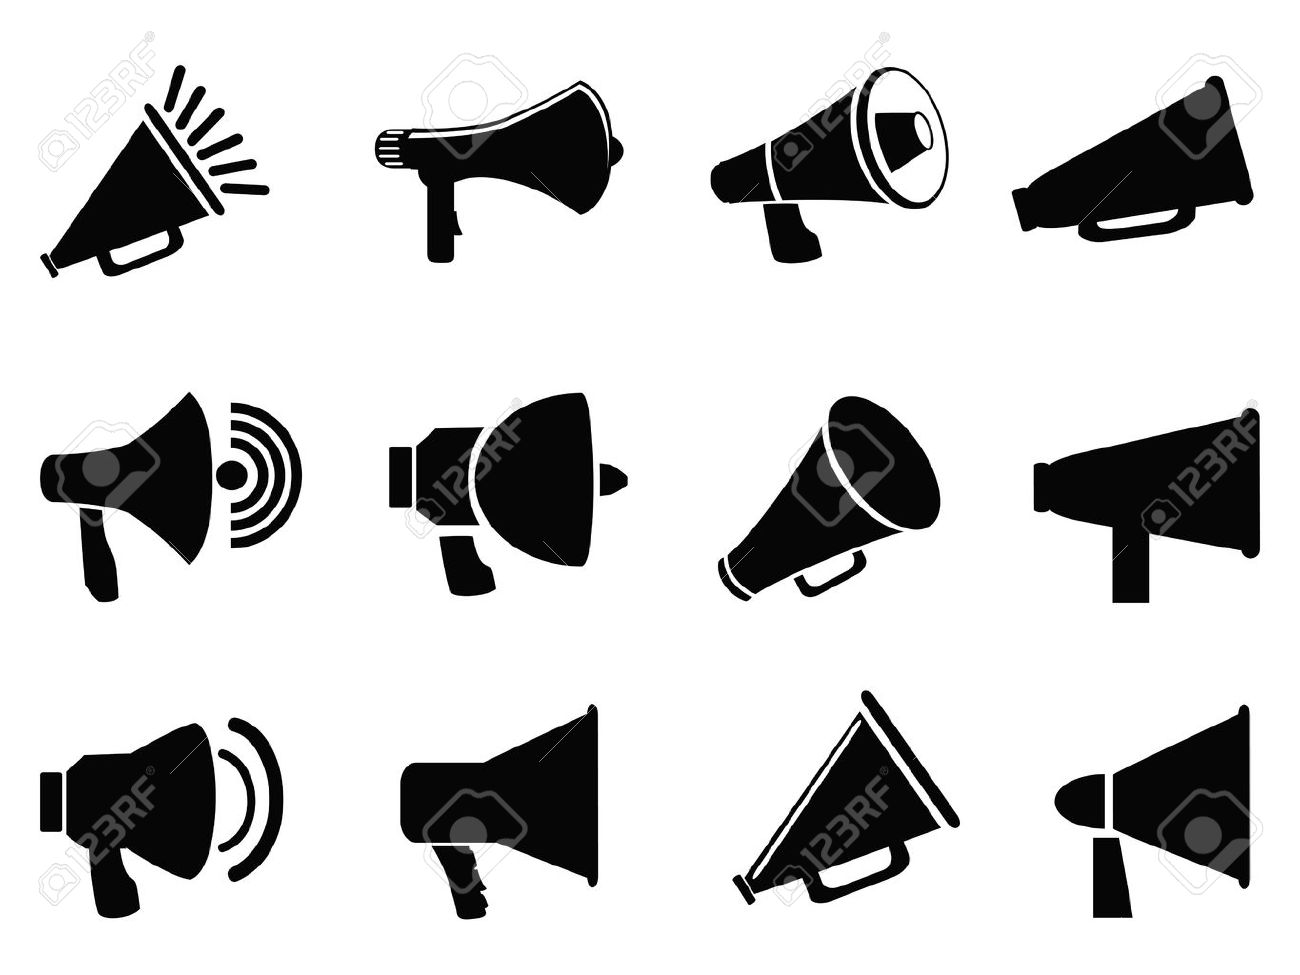 isolated black megaphone icons from white background - 24899204